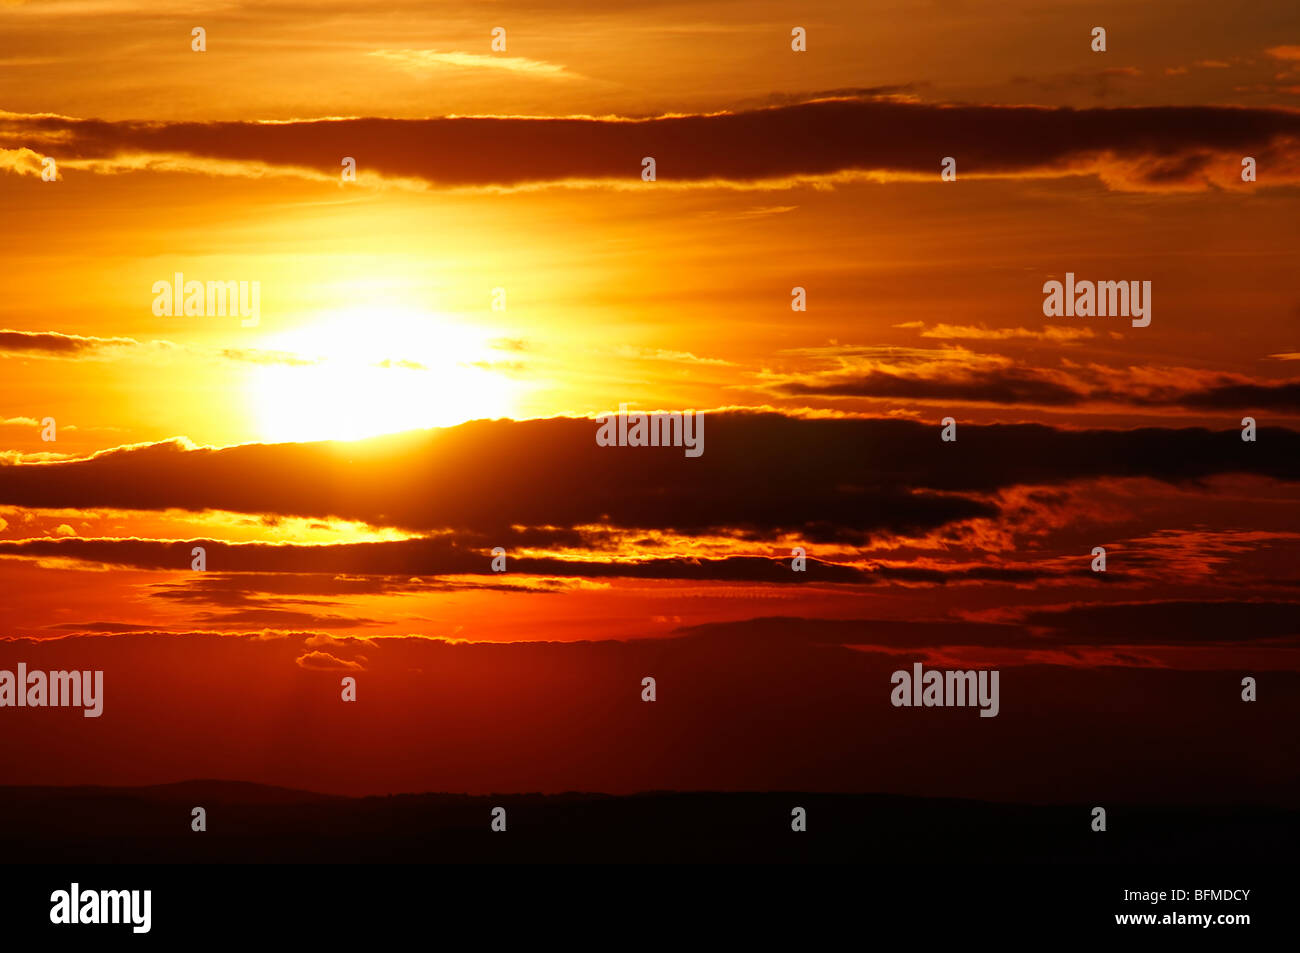 sun - sky and sunset - Stock Image